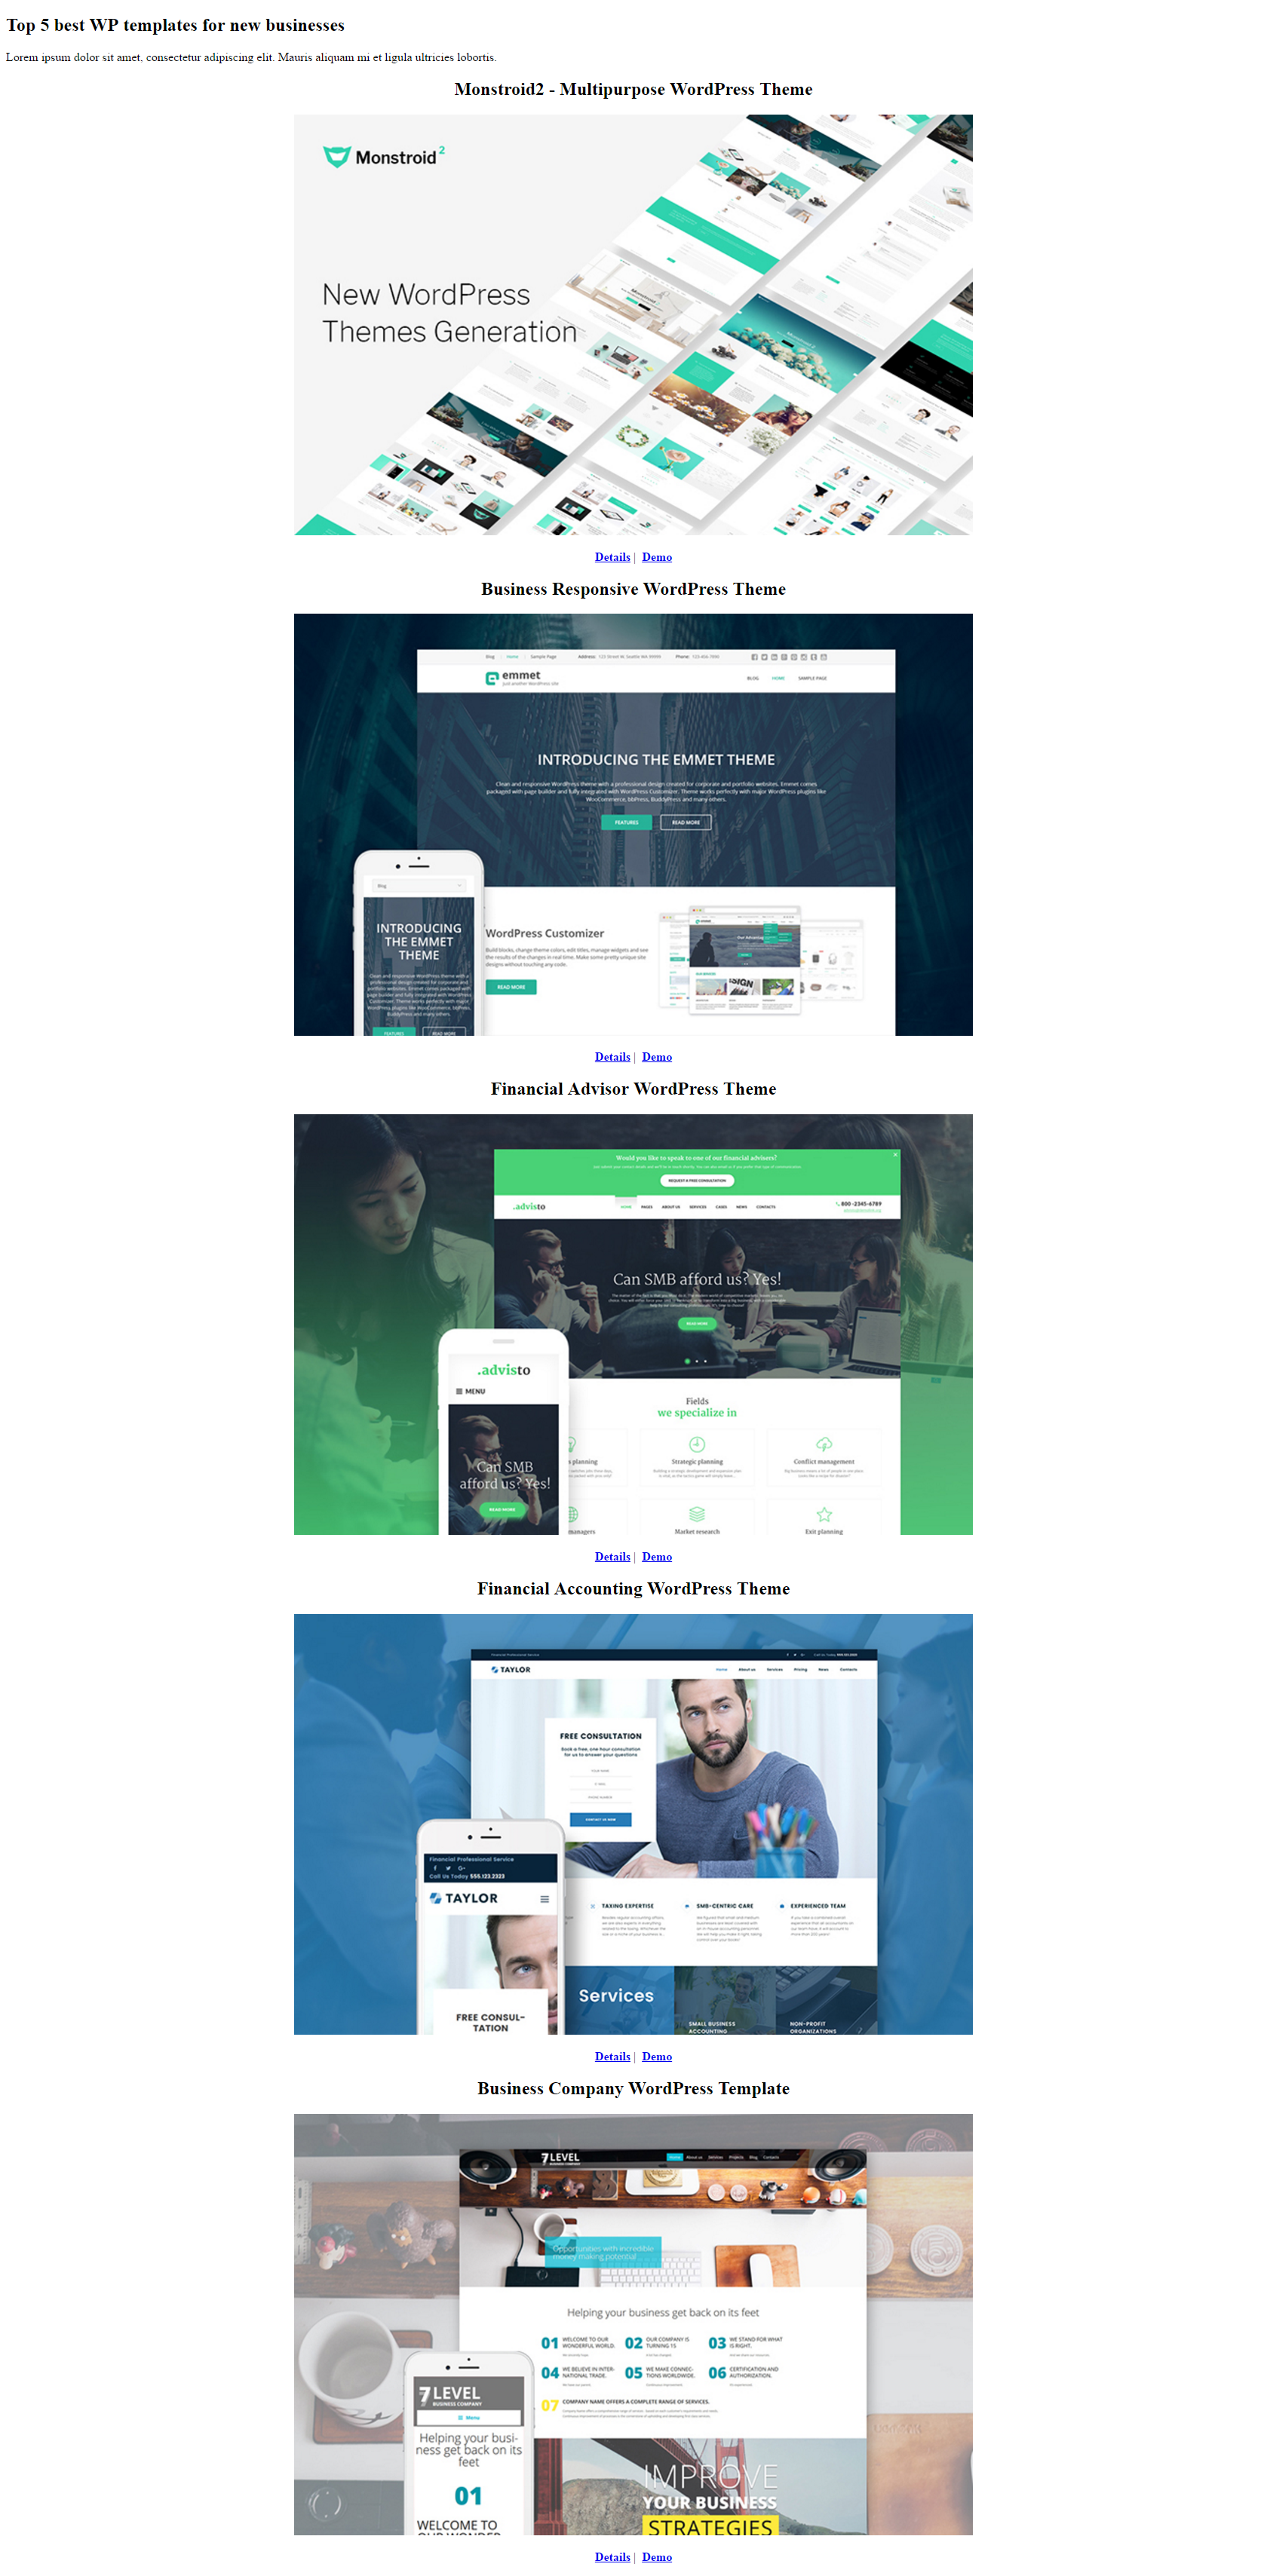 Top-5-best-WP-templates-for-new-businesses